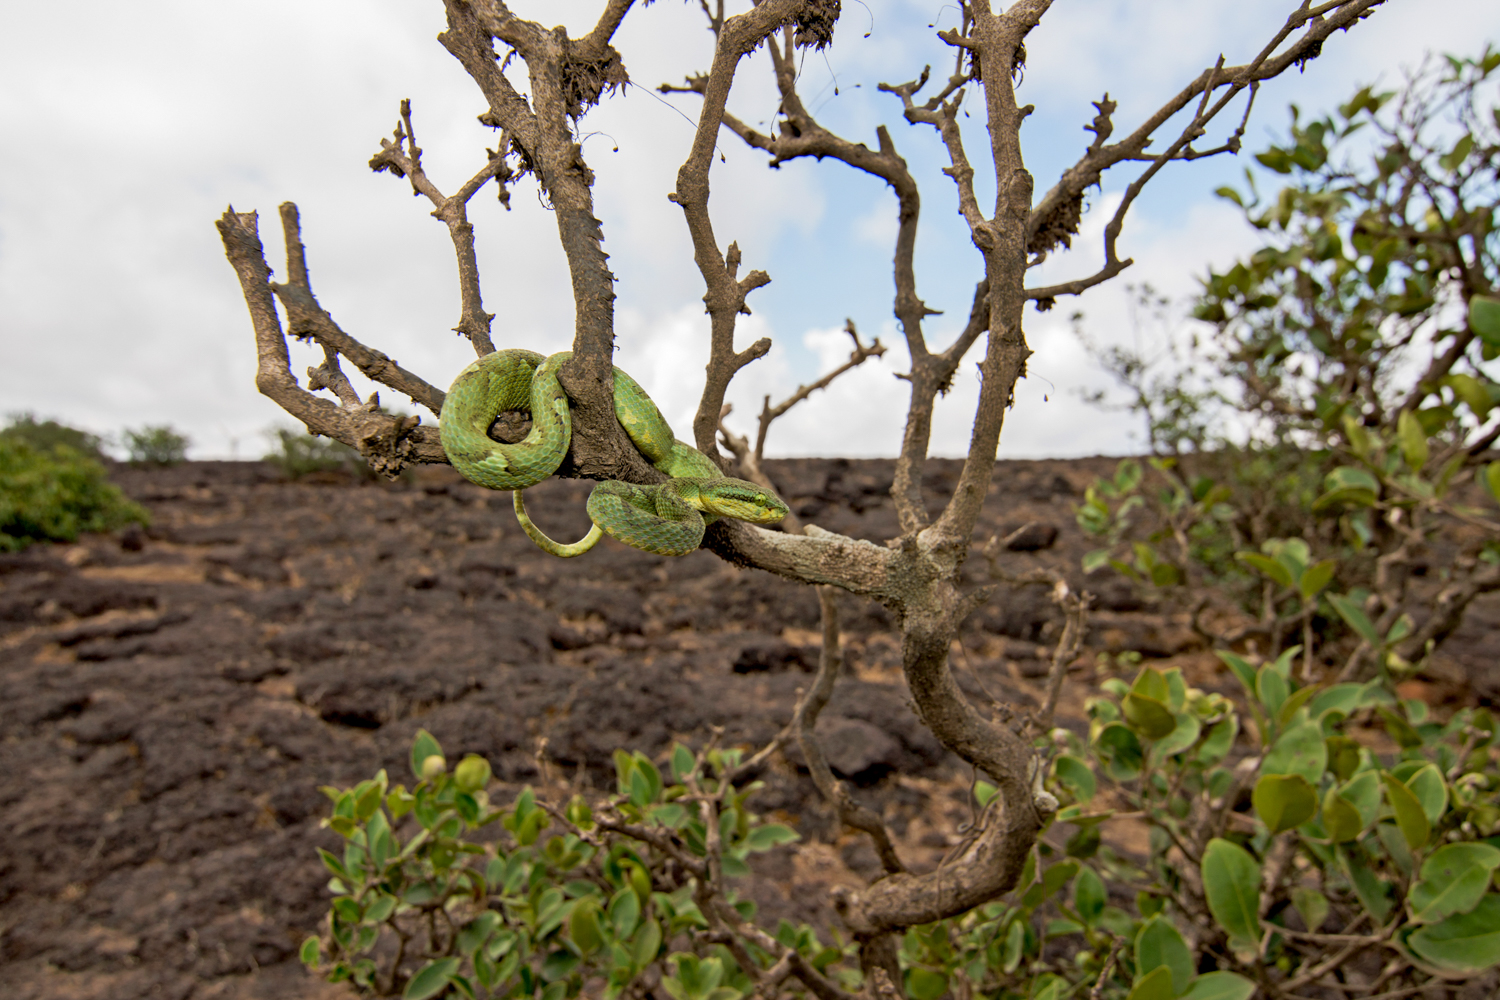 The bamboo pit viper ( Trimeresurus gramineus ) rests on the barren tree,  waiting for night to fall.